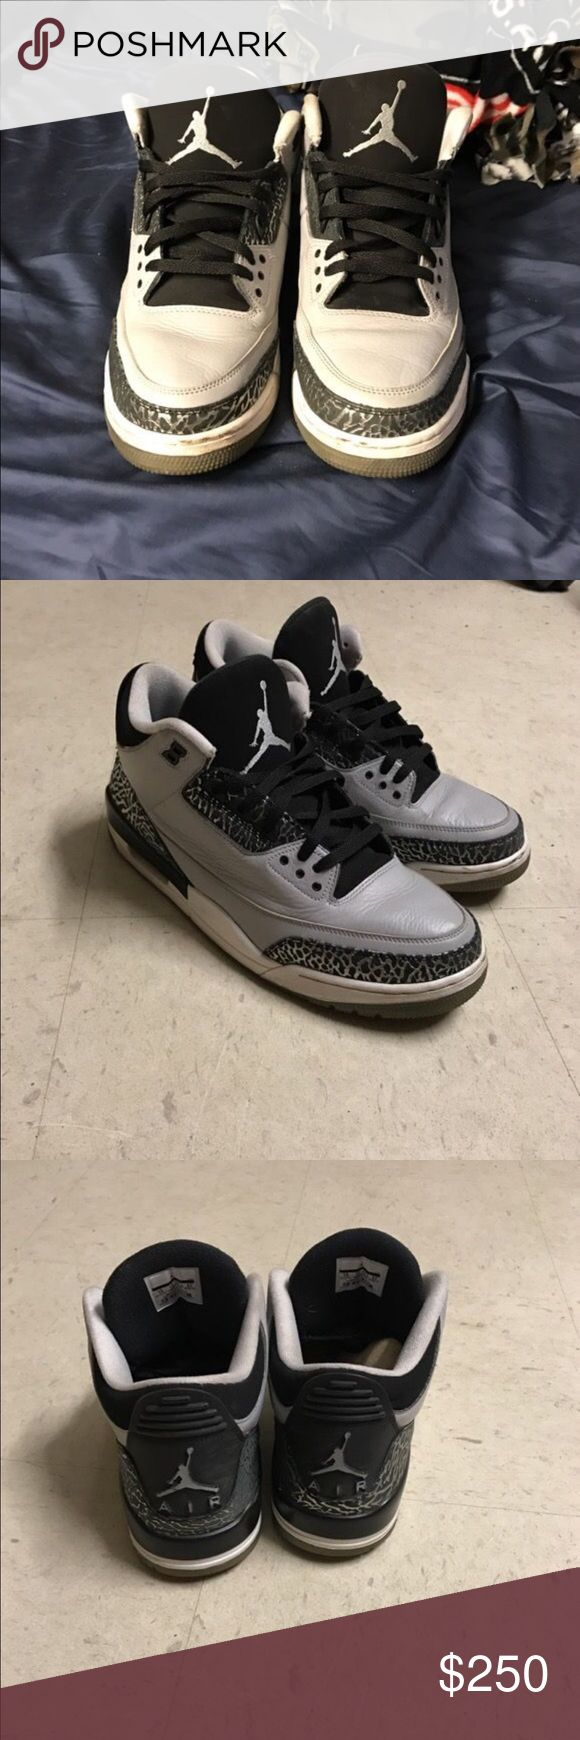 retro 3s retro 3s have regular wear and tear and i have the box negotiable